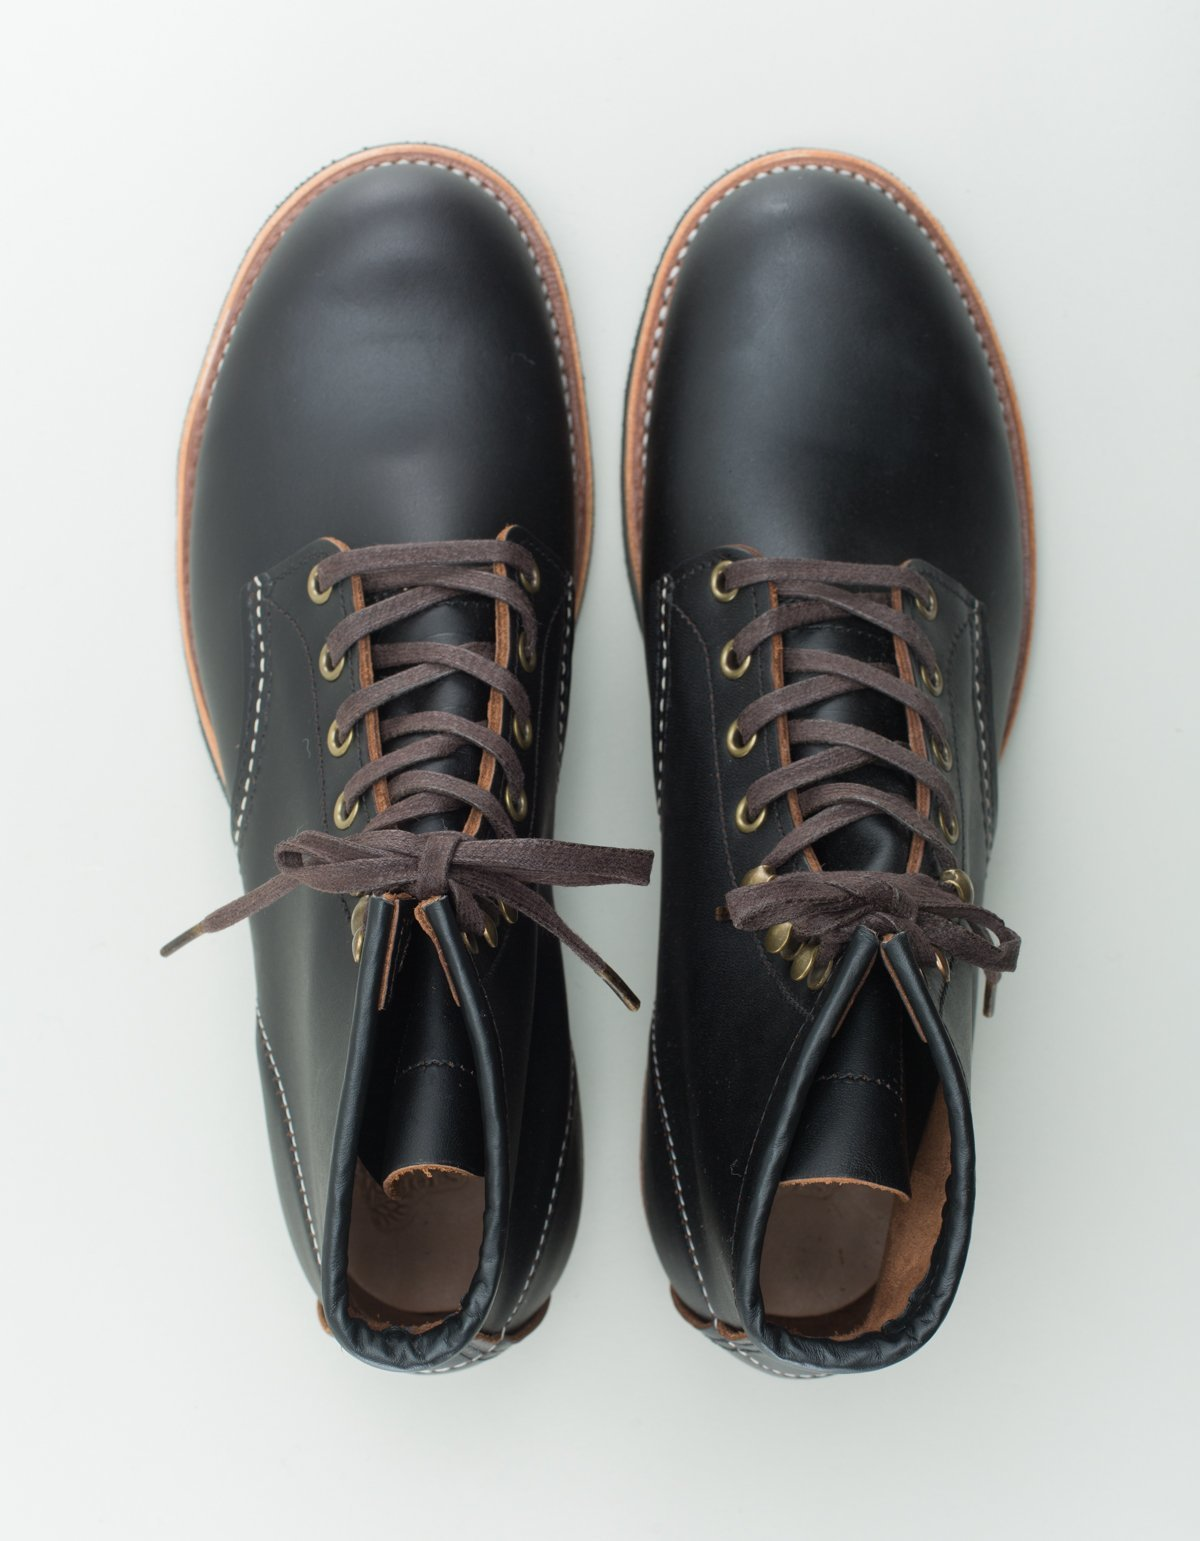 064cd2b71a Red Wing Shoes Prairie Leather Blacksmith Boot - Black